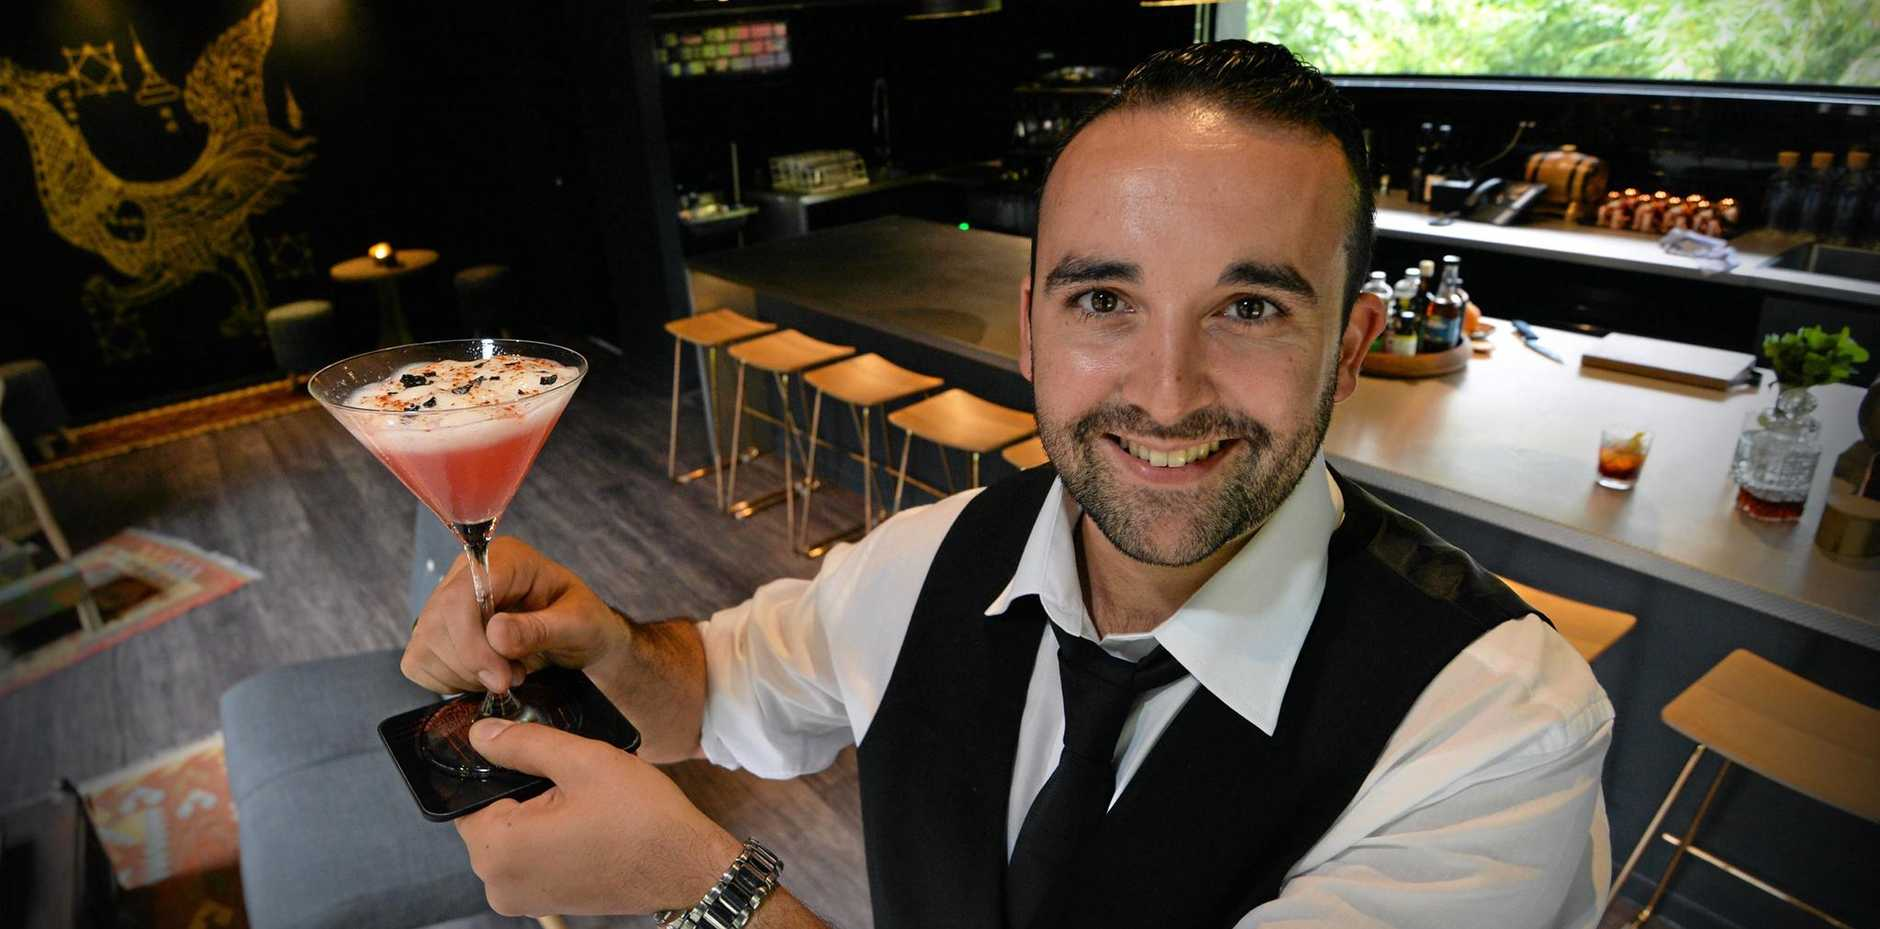 A private dining room with its own bar is the latest addition for the Spirit House restaurant at Yandina. Bar manager, Yann Audran.